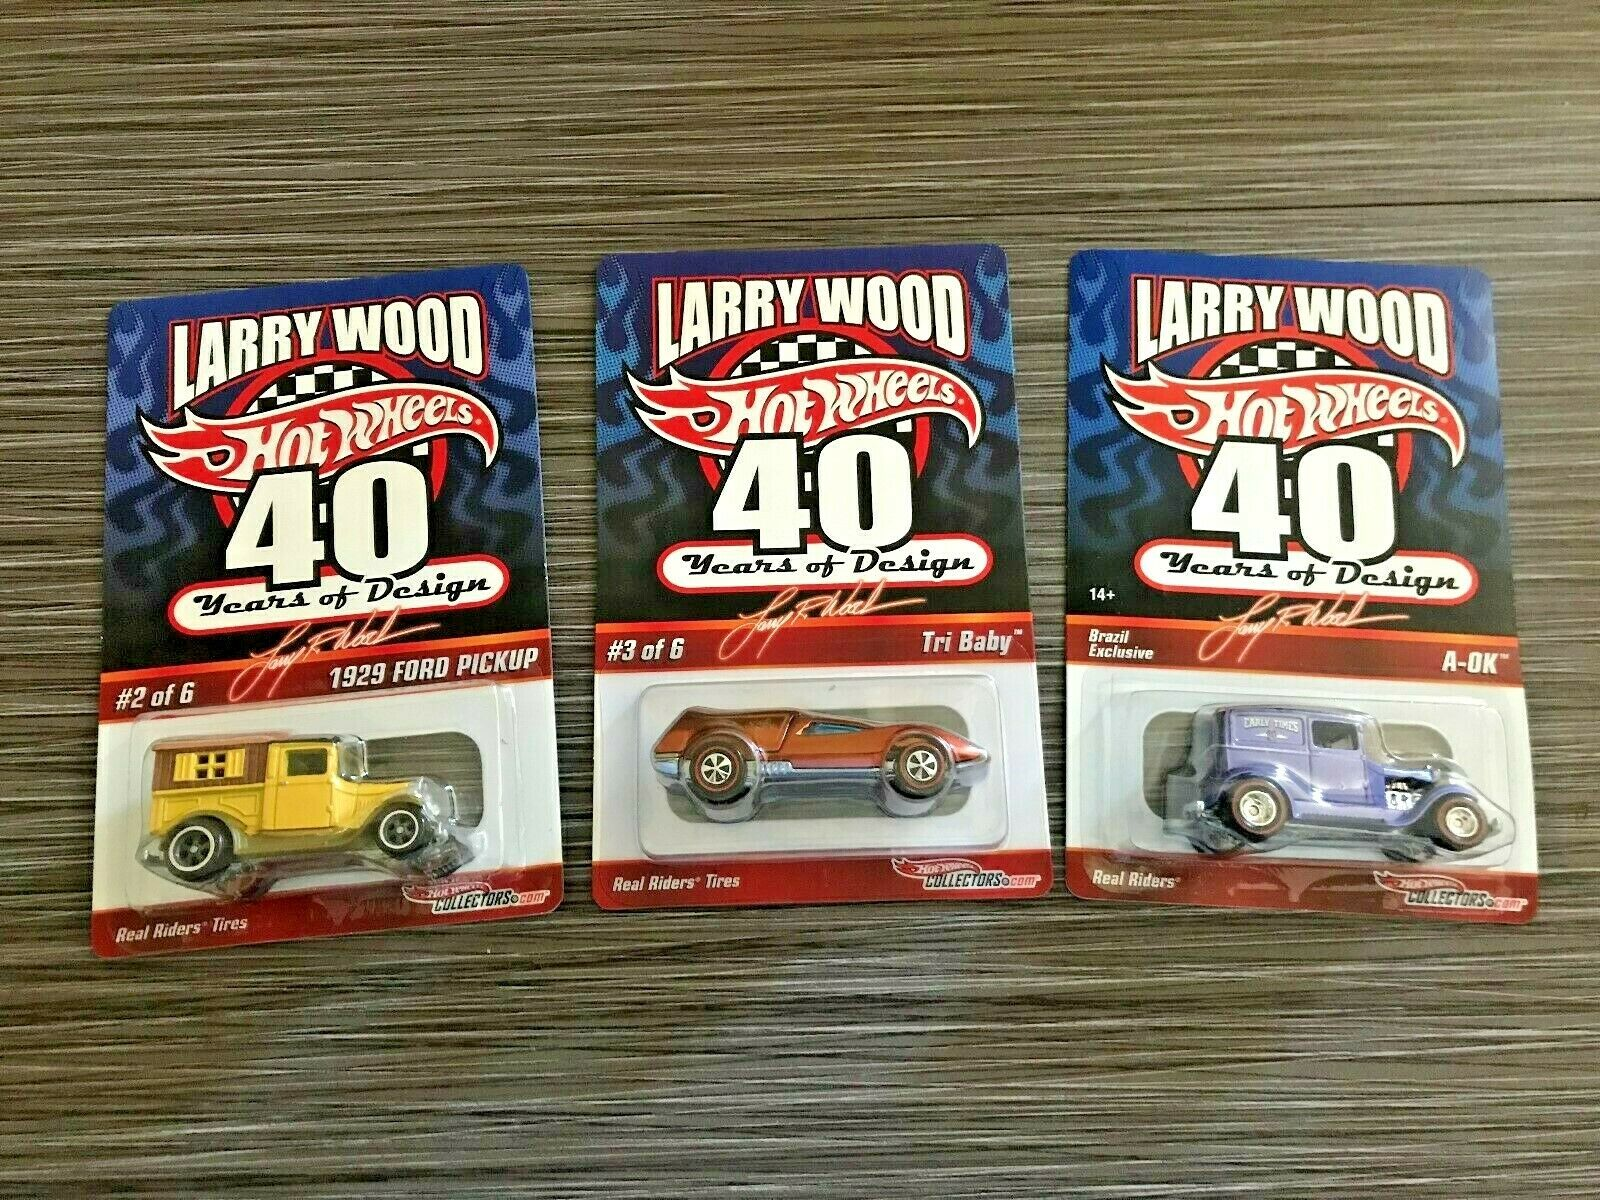 Hot Wheels  Larry Wood 40 Years of Design  (2009) Mixed Group w Real Riders